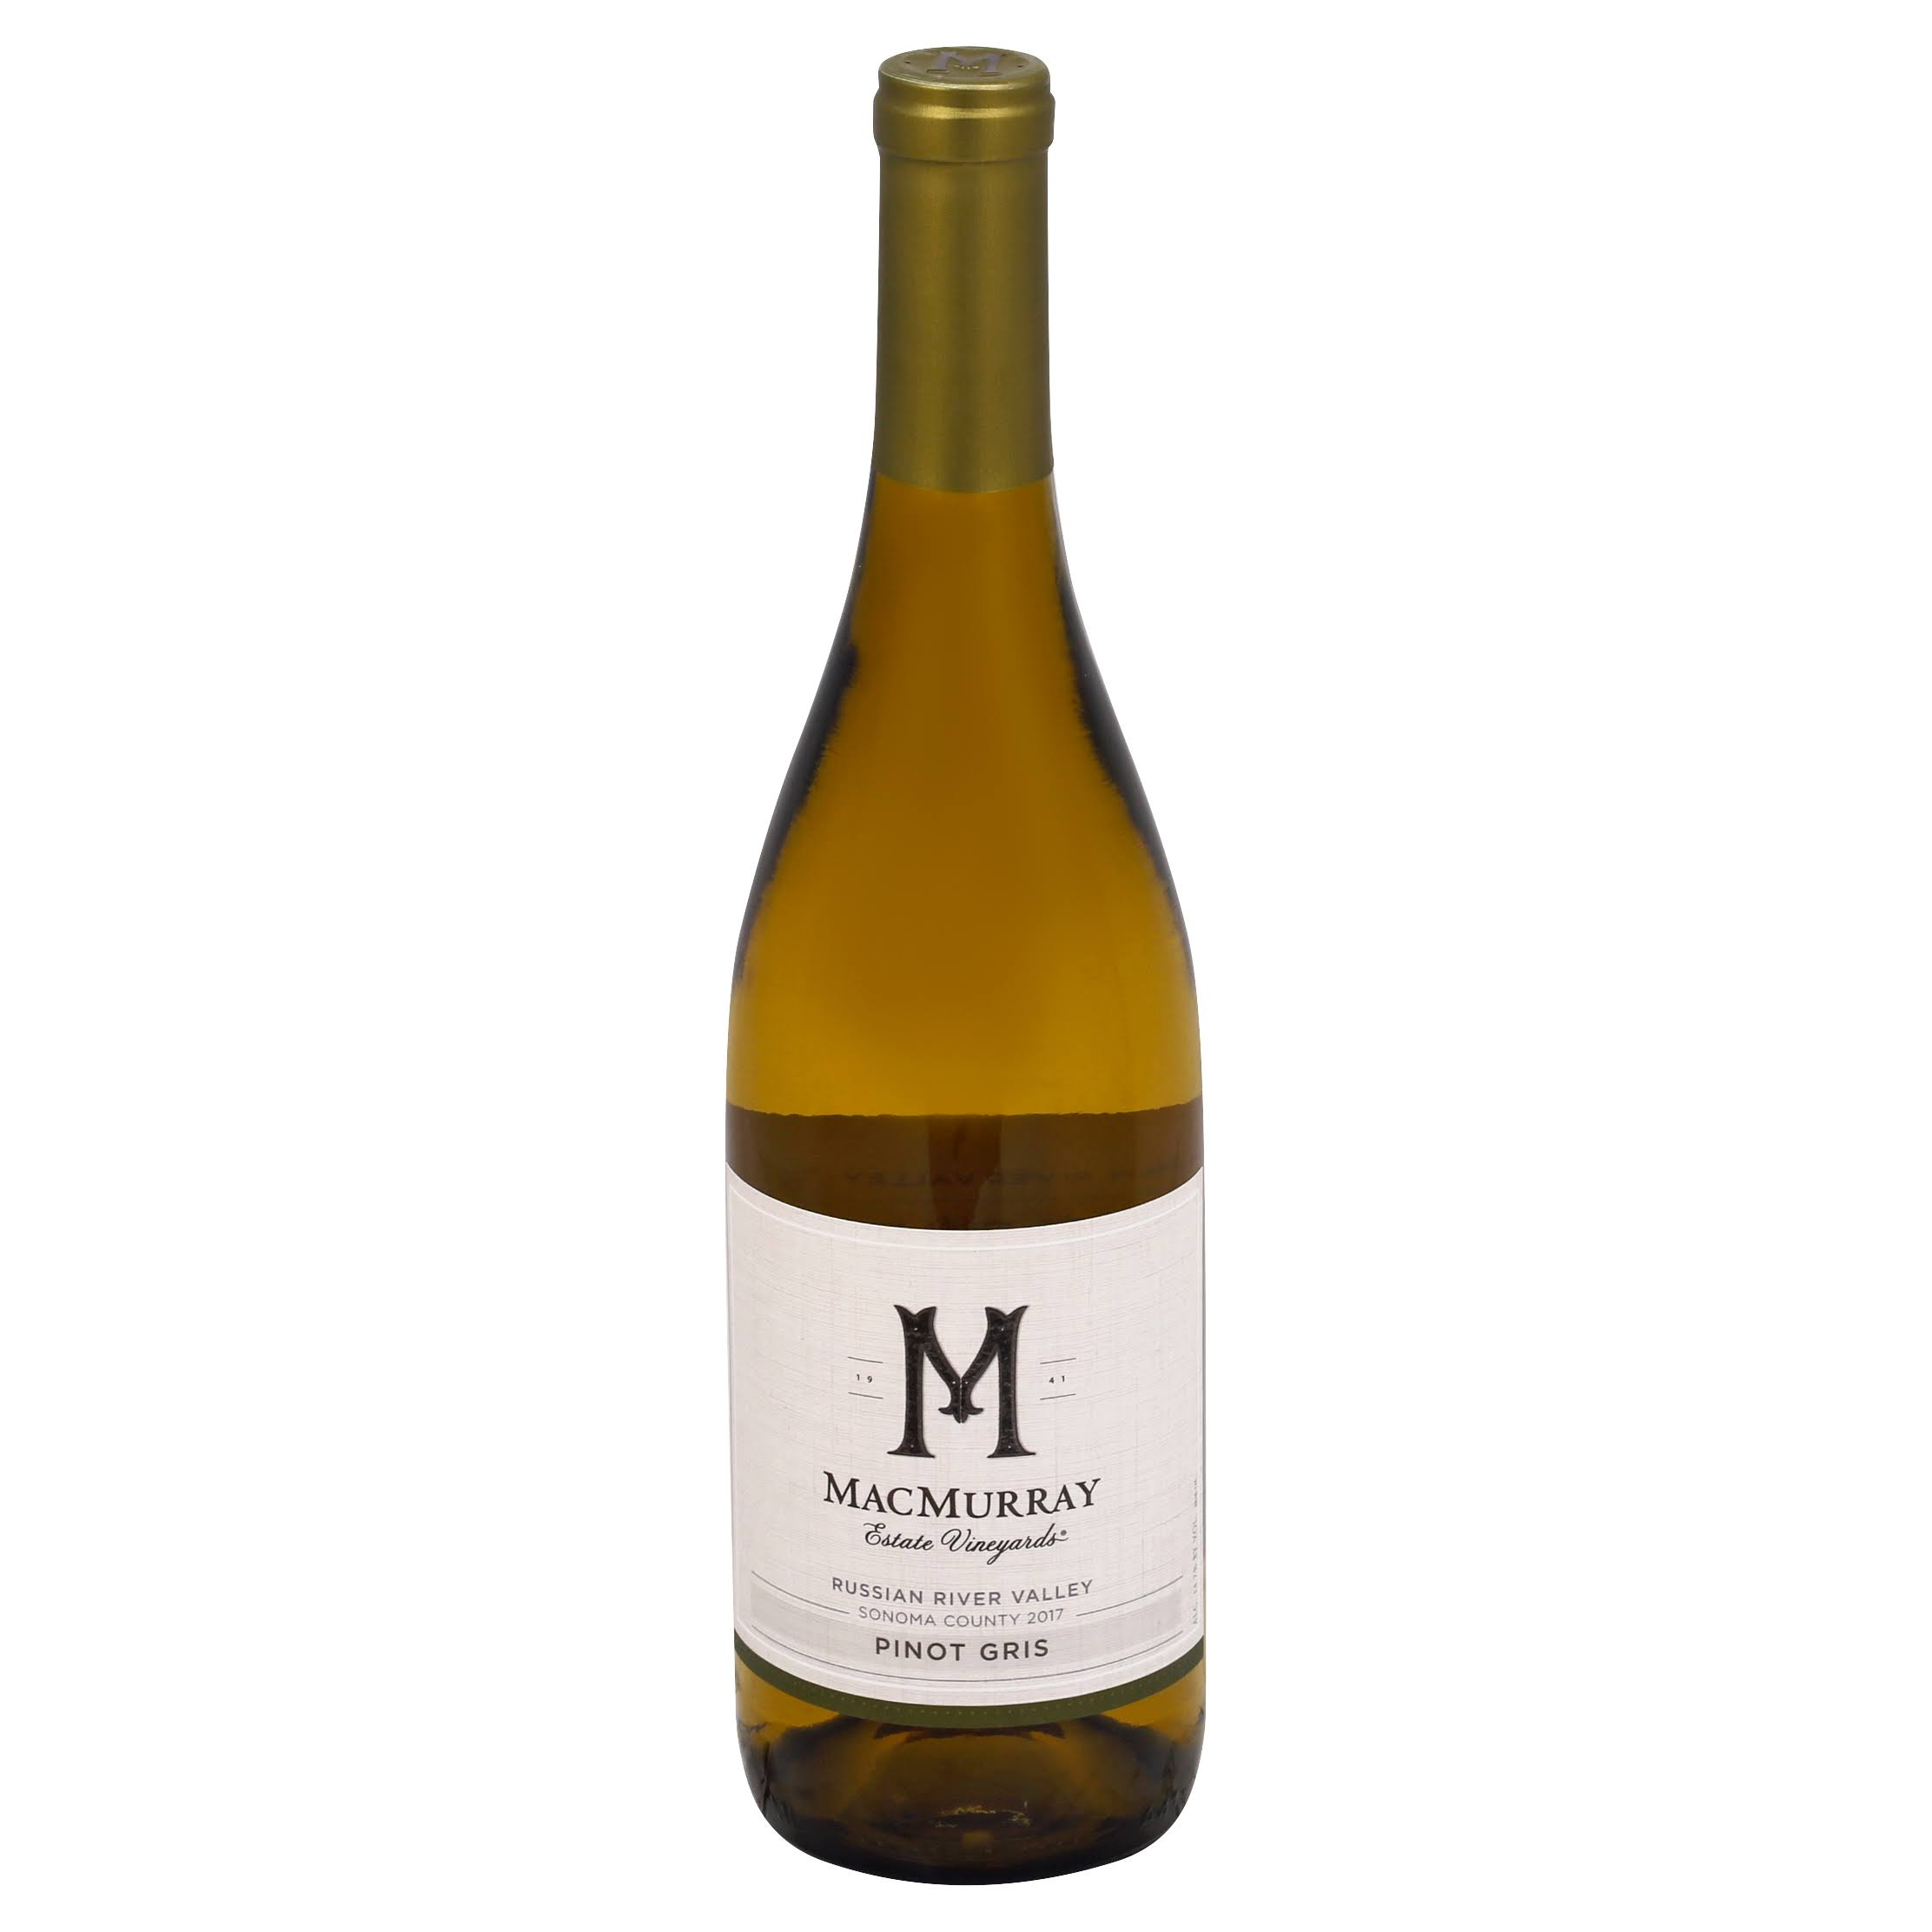 MacMurray Estate Vineyards Pinot Gris - Russian River Valley, USA